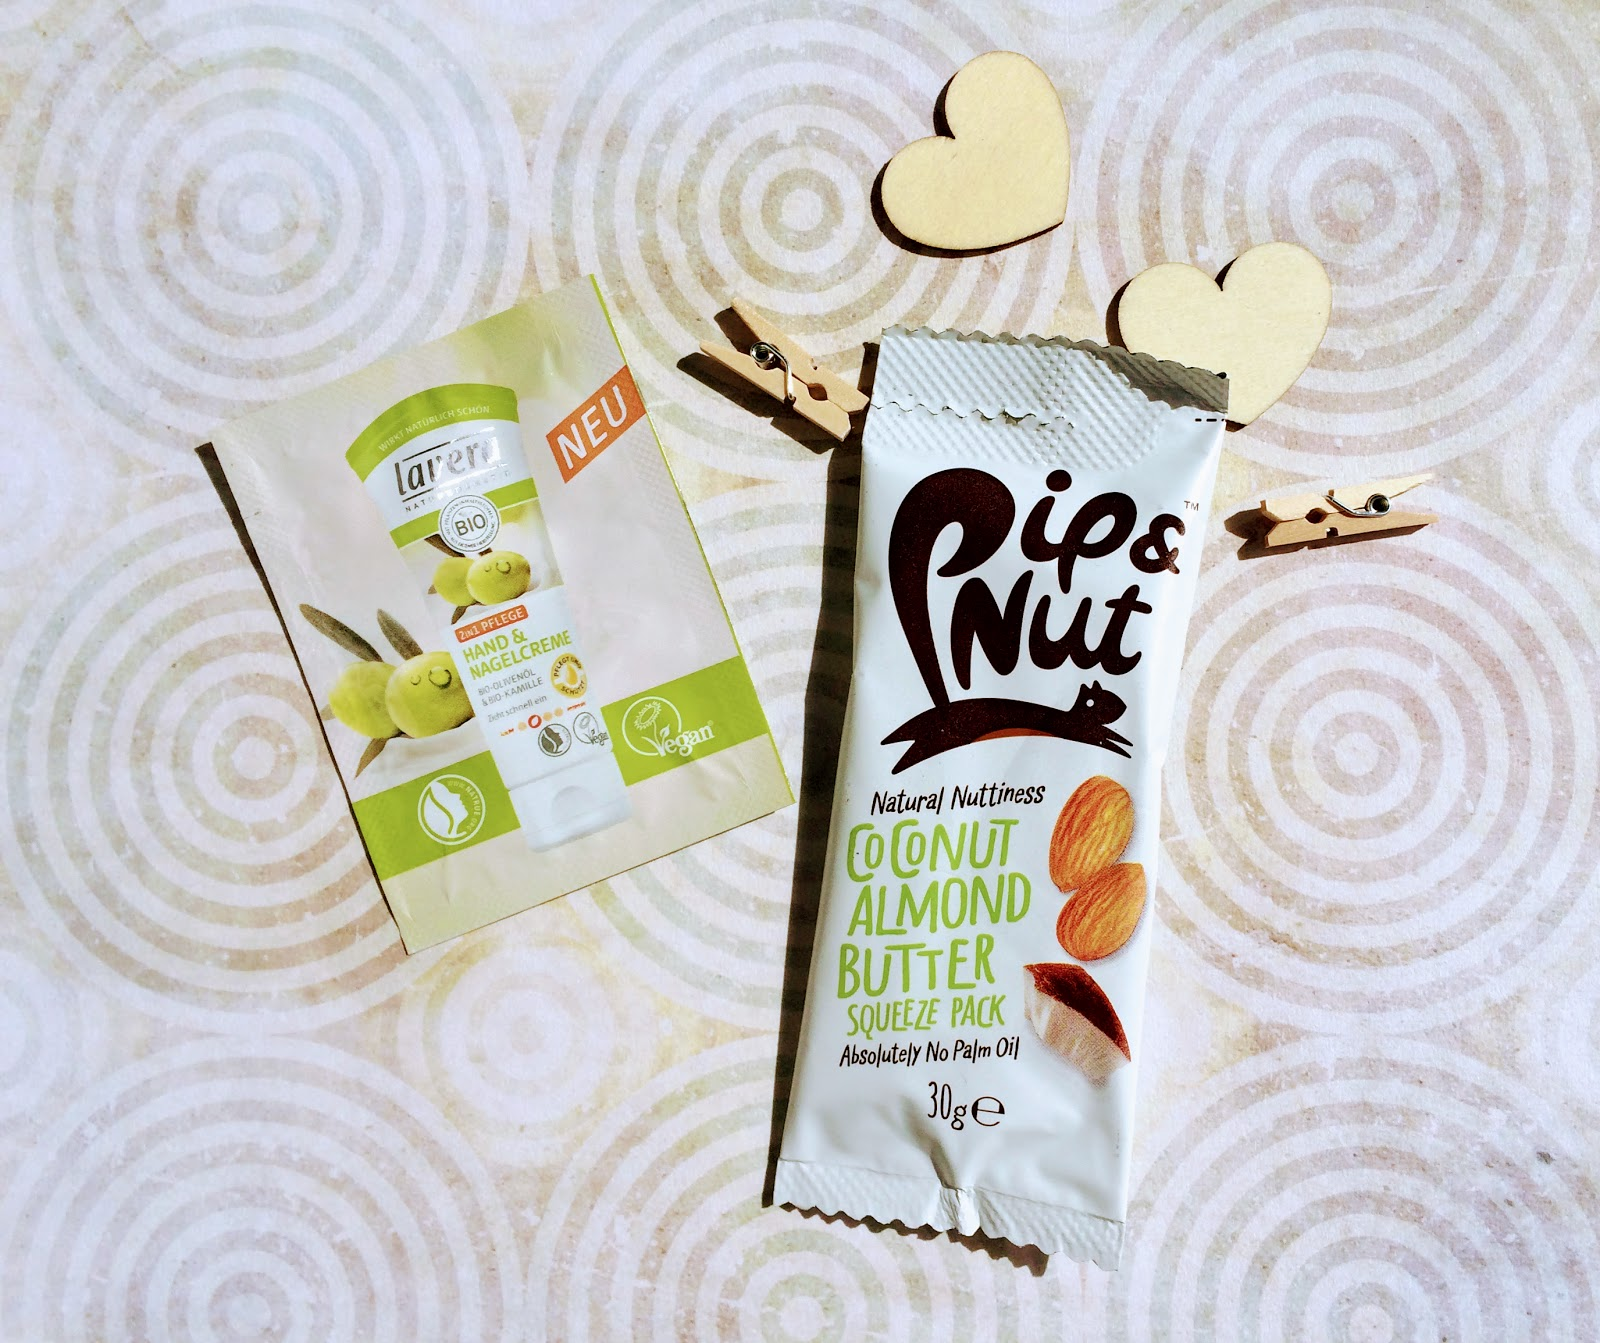 Pip and nut almond butter and lavera hand cream sample